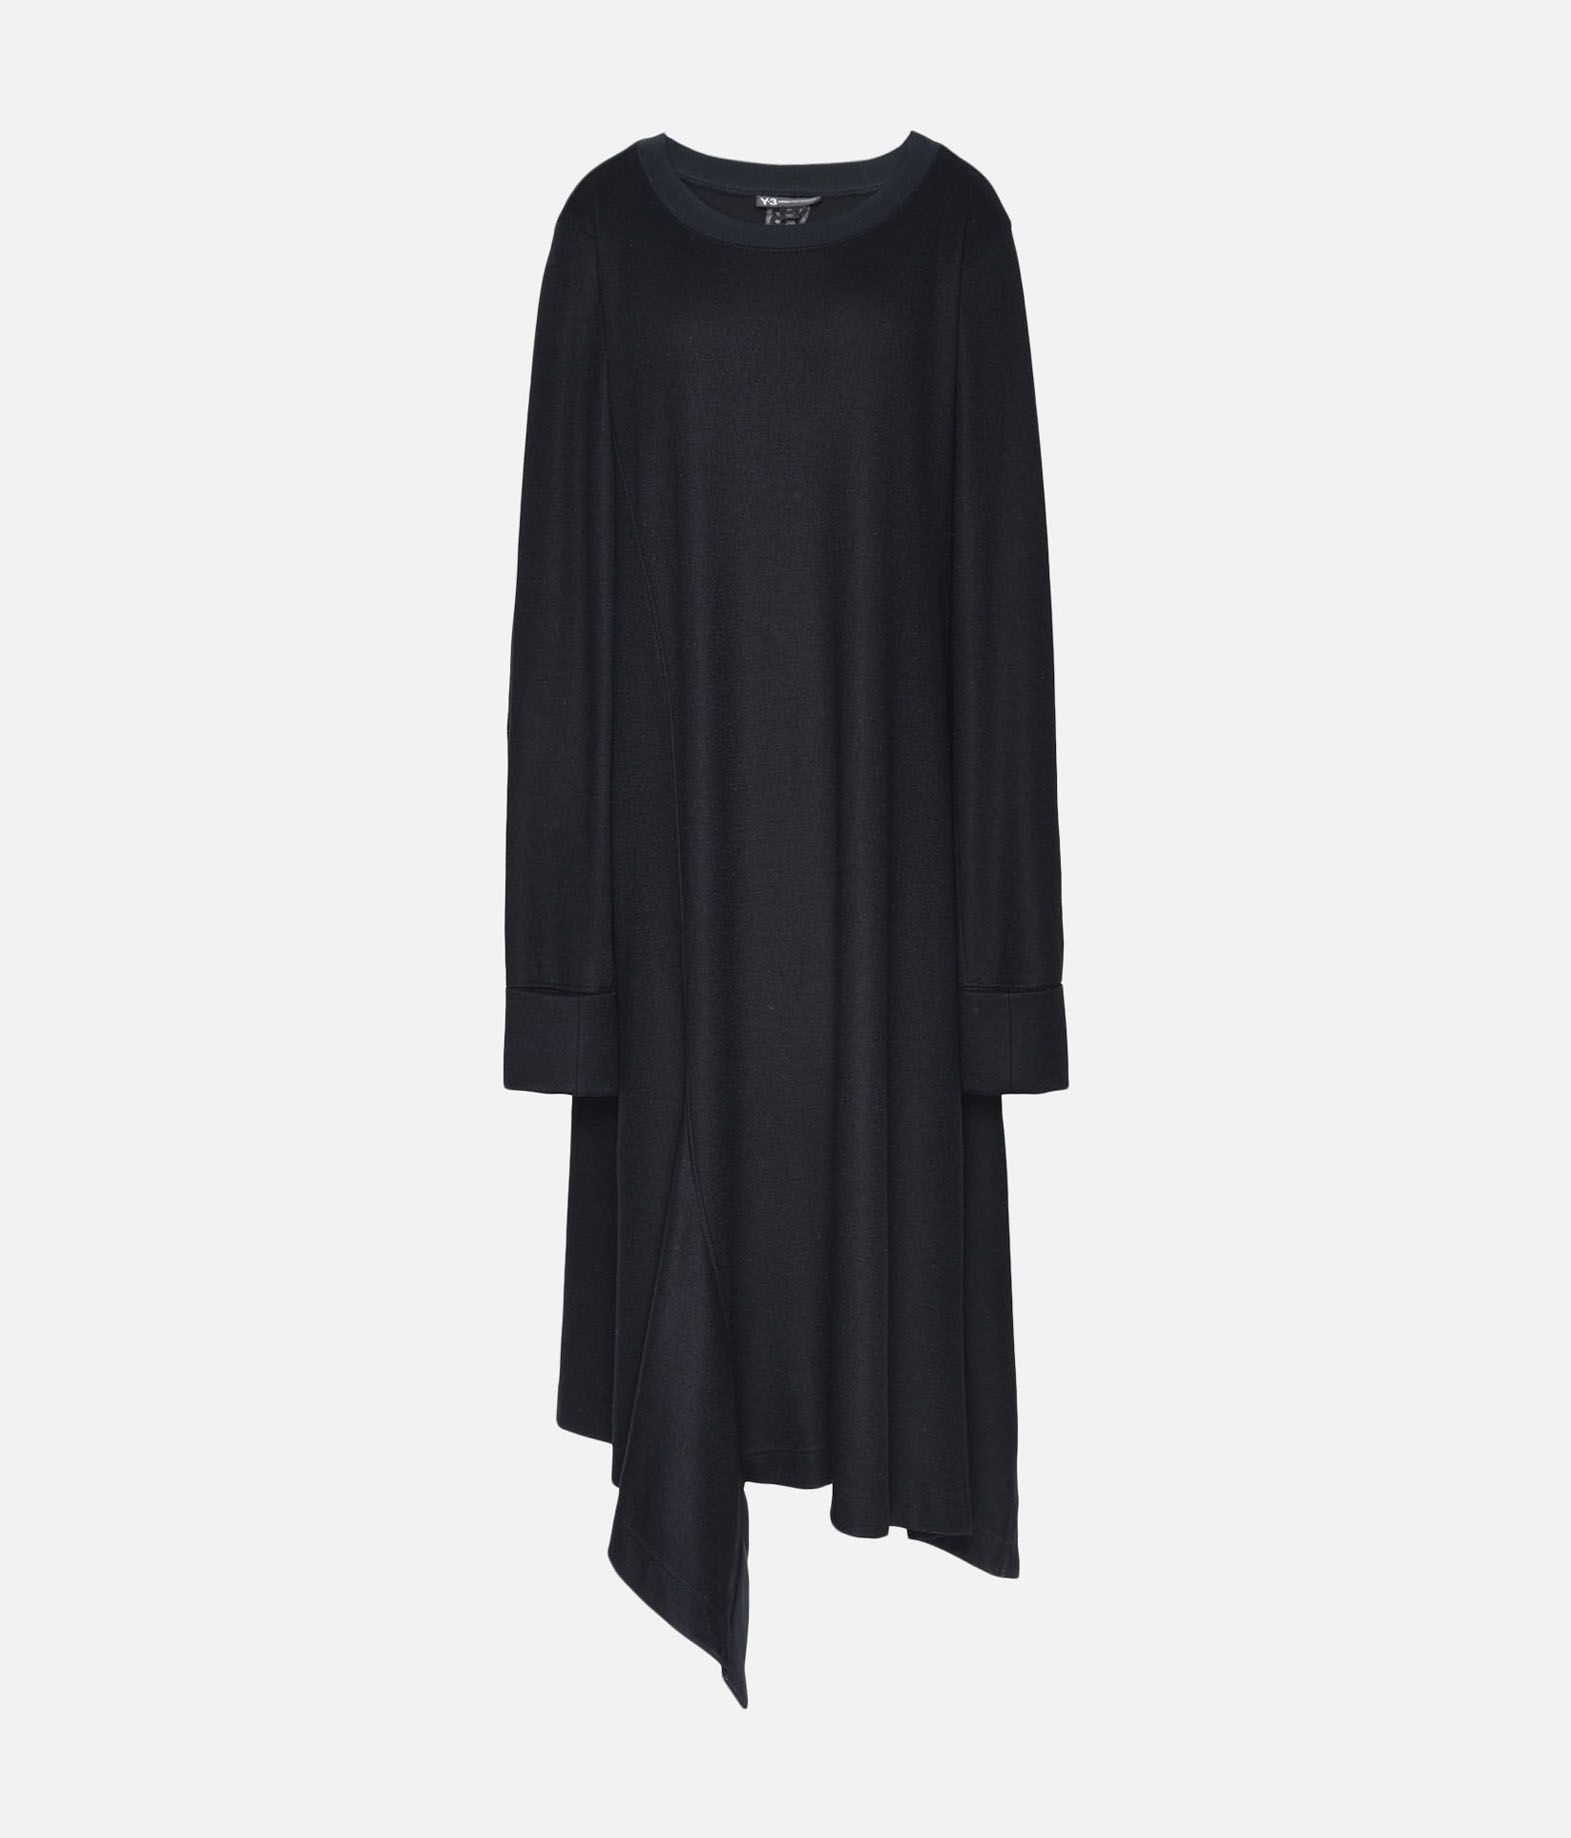 Y-3 Y-3 Wool Dress Long dress Woman f